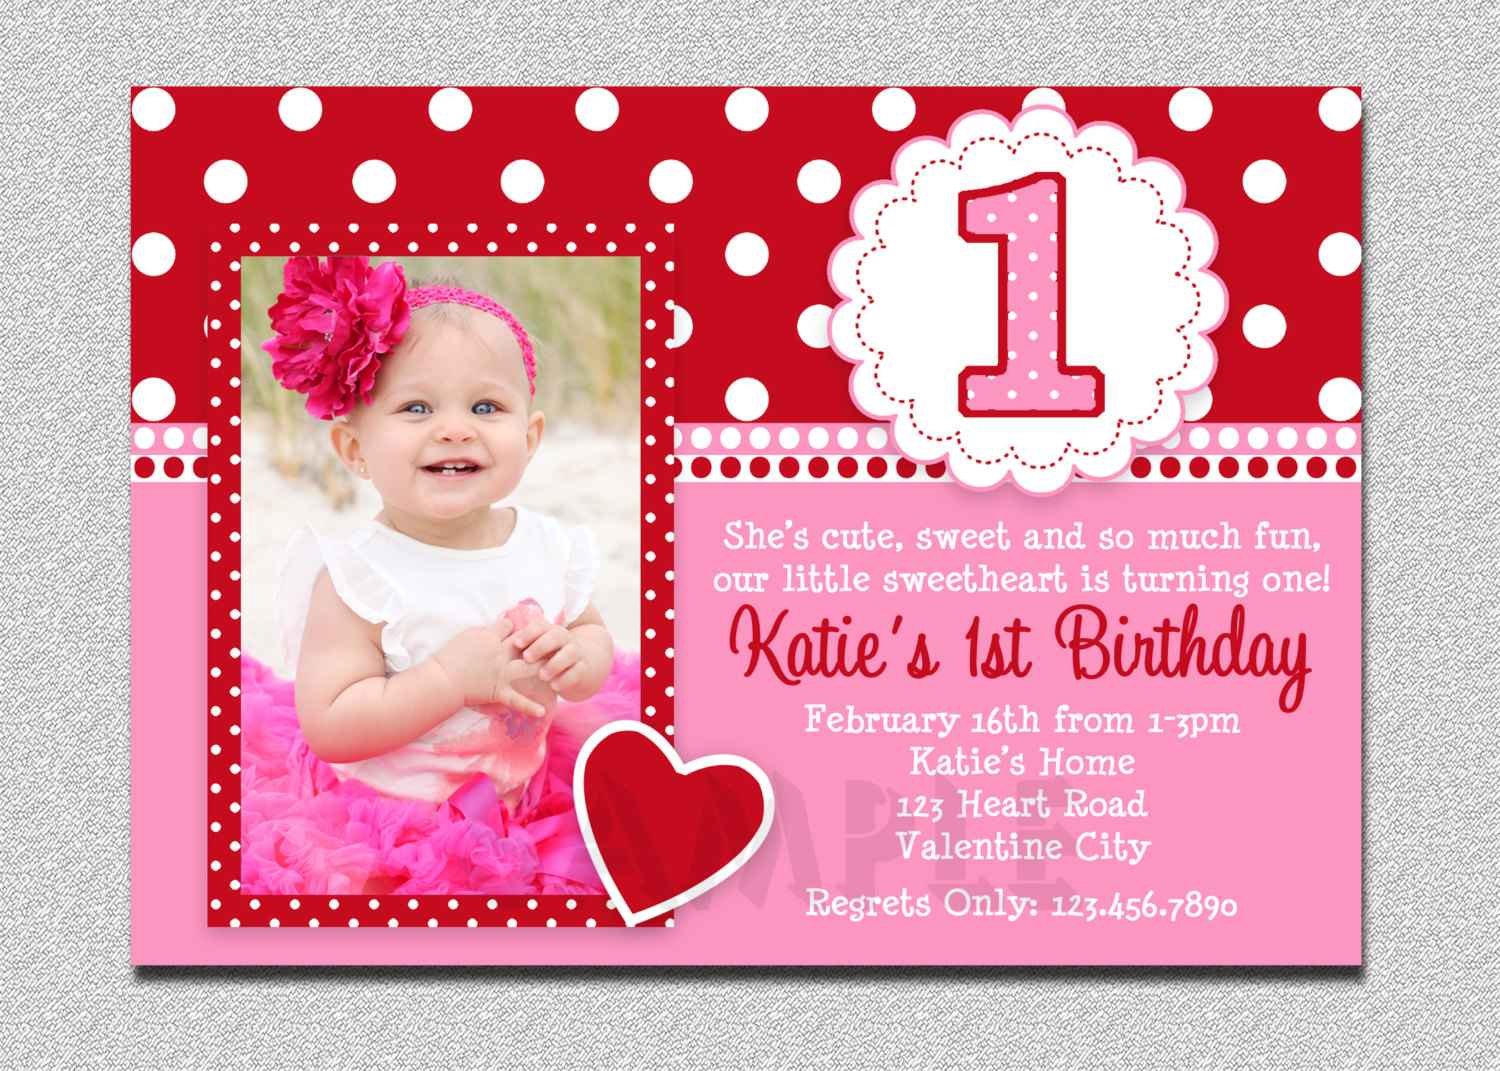 baby girl birthday invitation card design ; baby-girl-first-birthday-party-invitations-with-Birthday-invitations-ideas-for-your-cards-inspiration-1